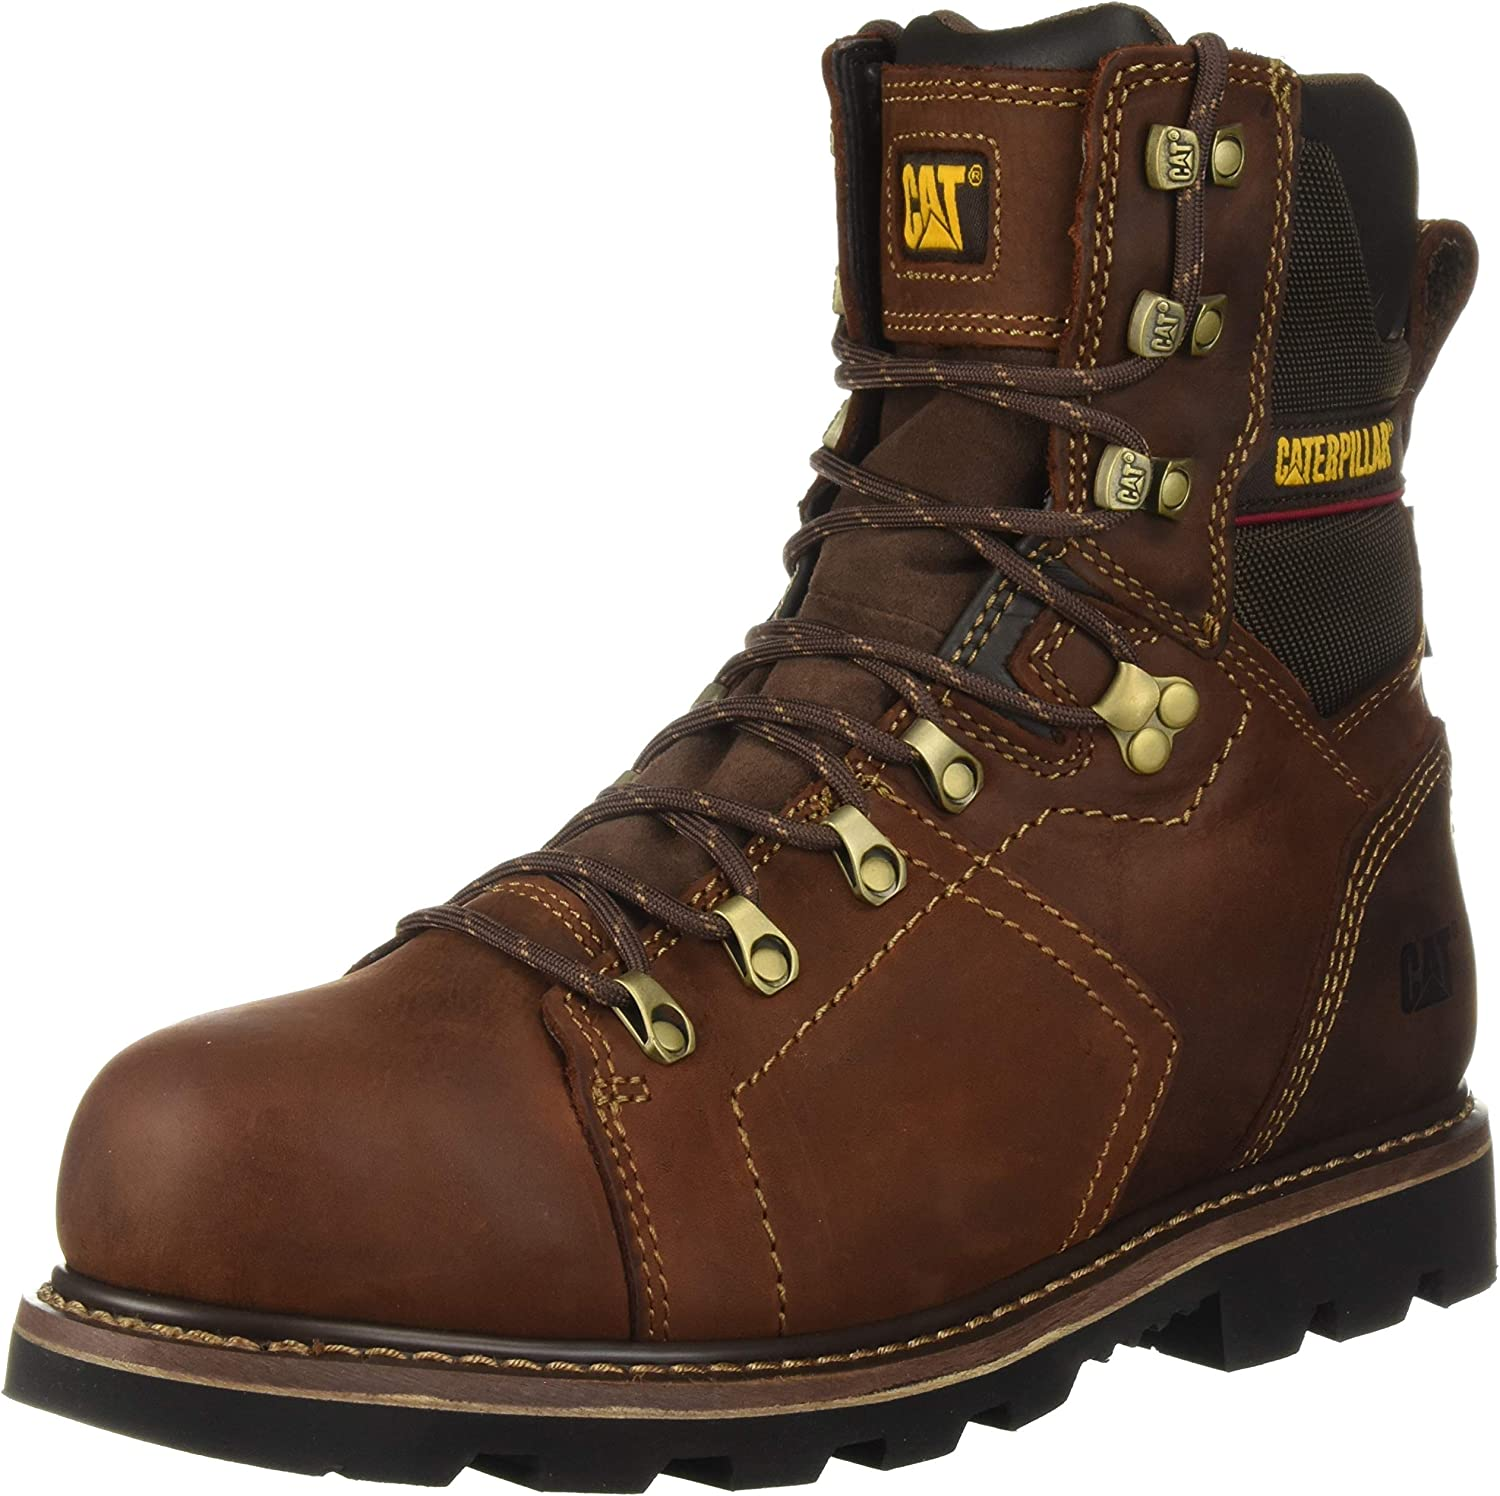 Cat Men's Alaska 2.0 Work Boot in Black